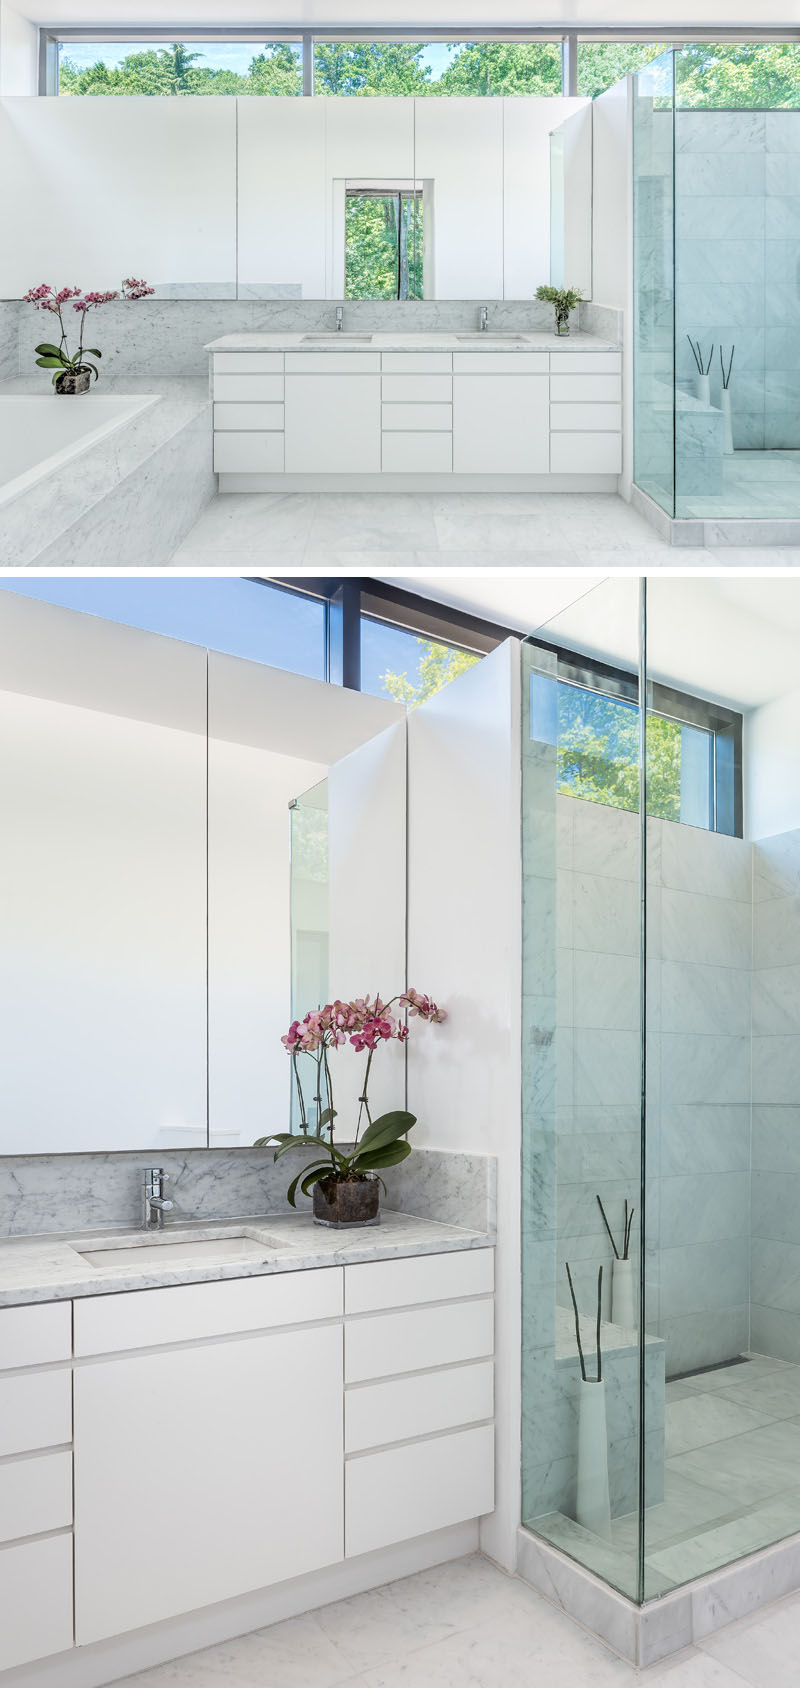 The Bridge House A Contemporary Home Design Concealed With Nature 3